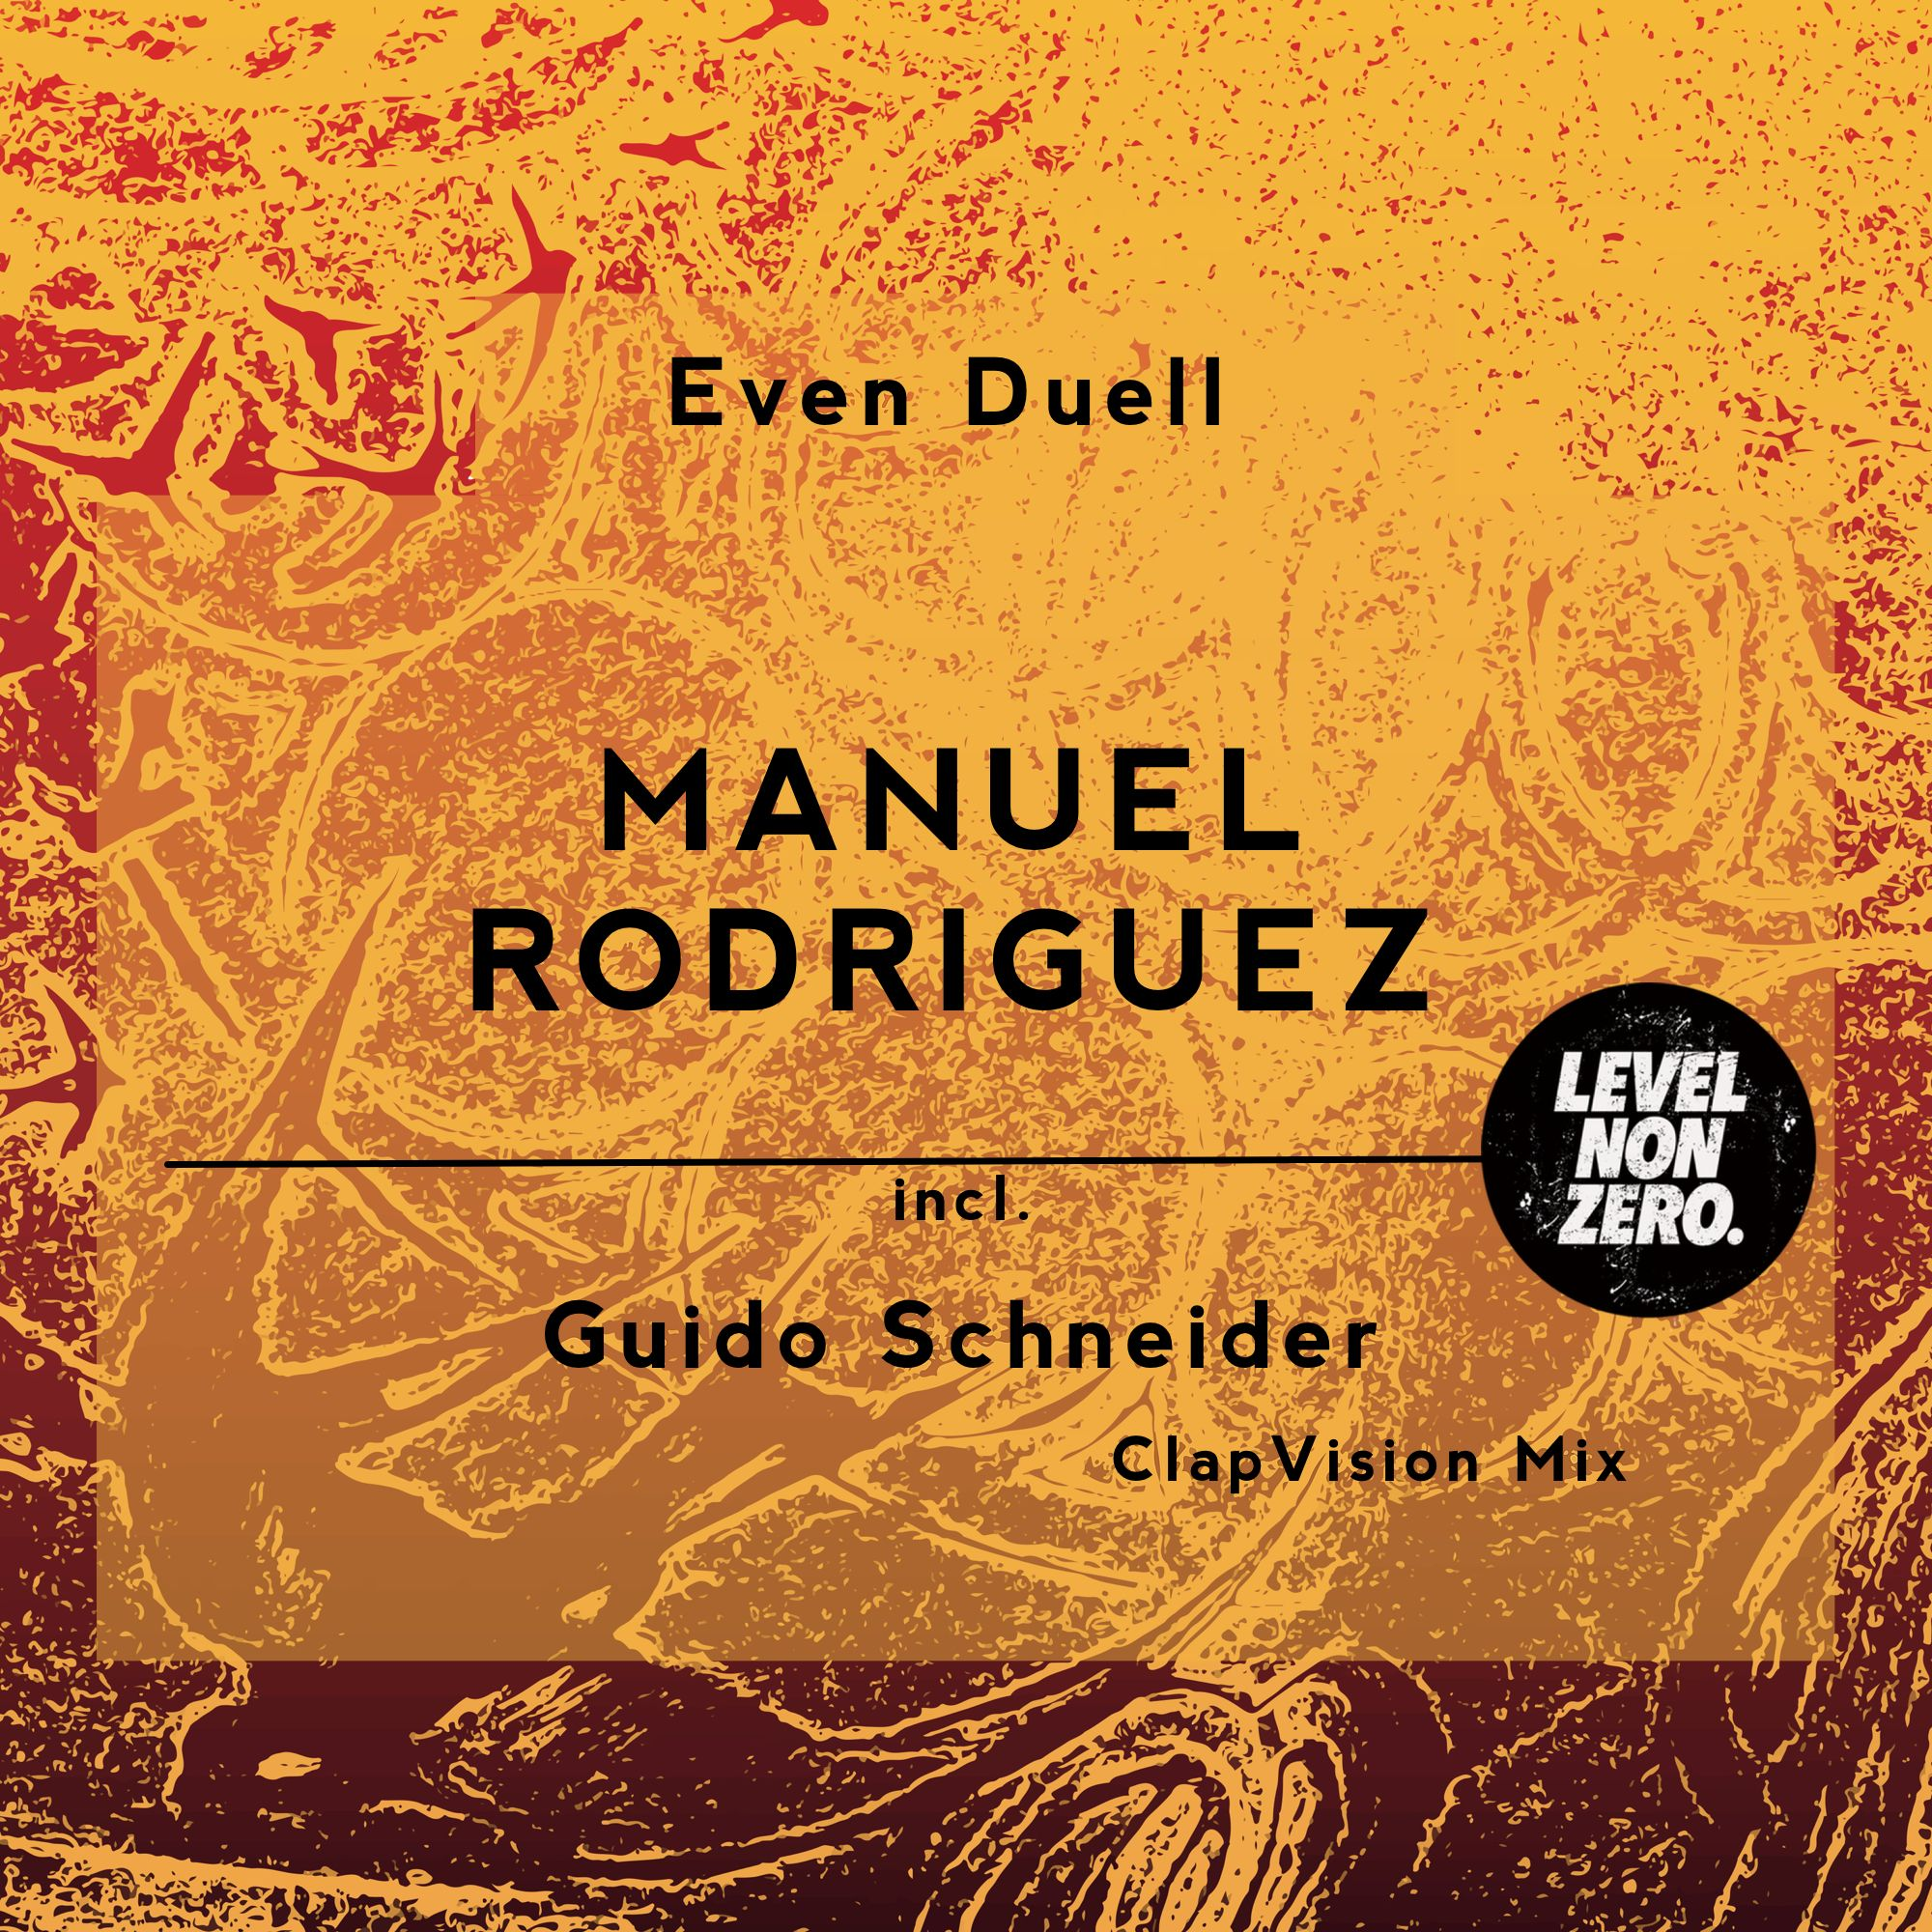 lnz_044_even_duell_-_cover_2000_.jpg